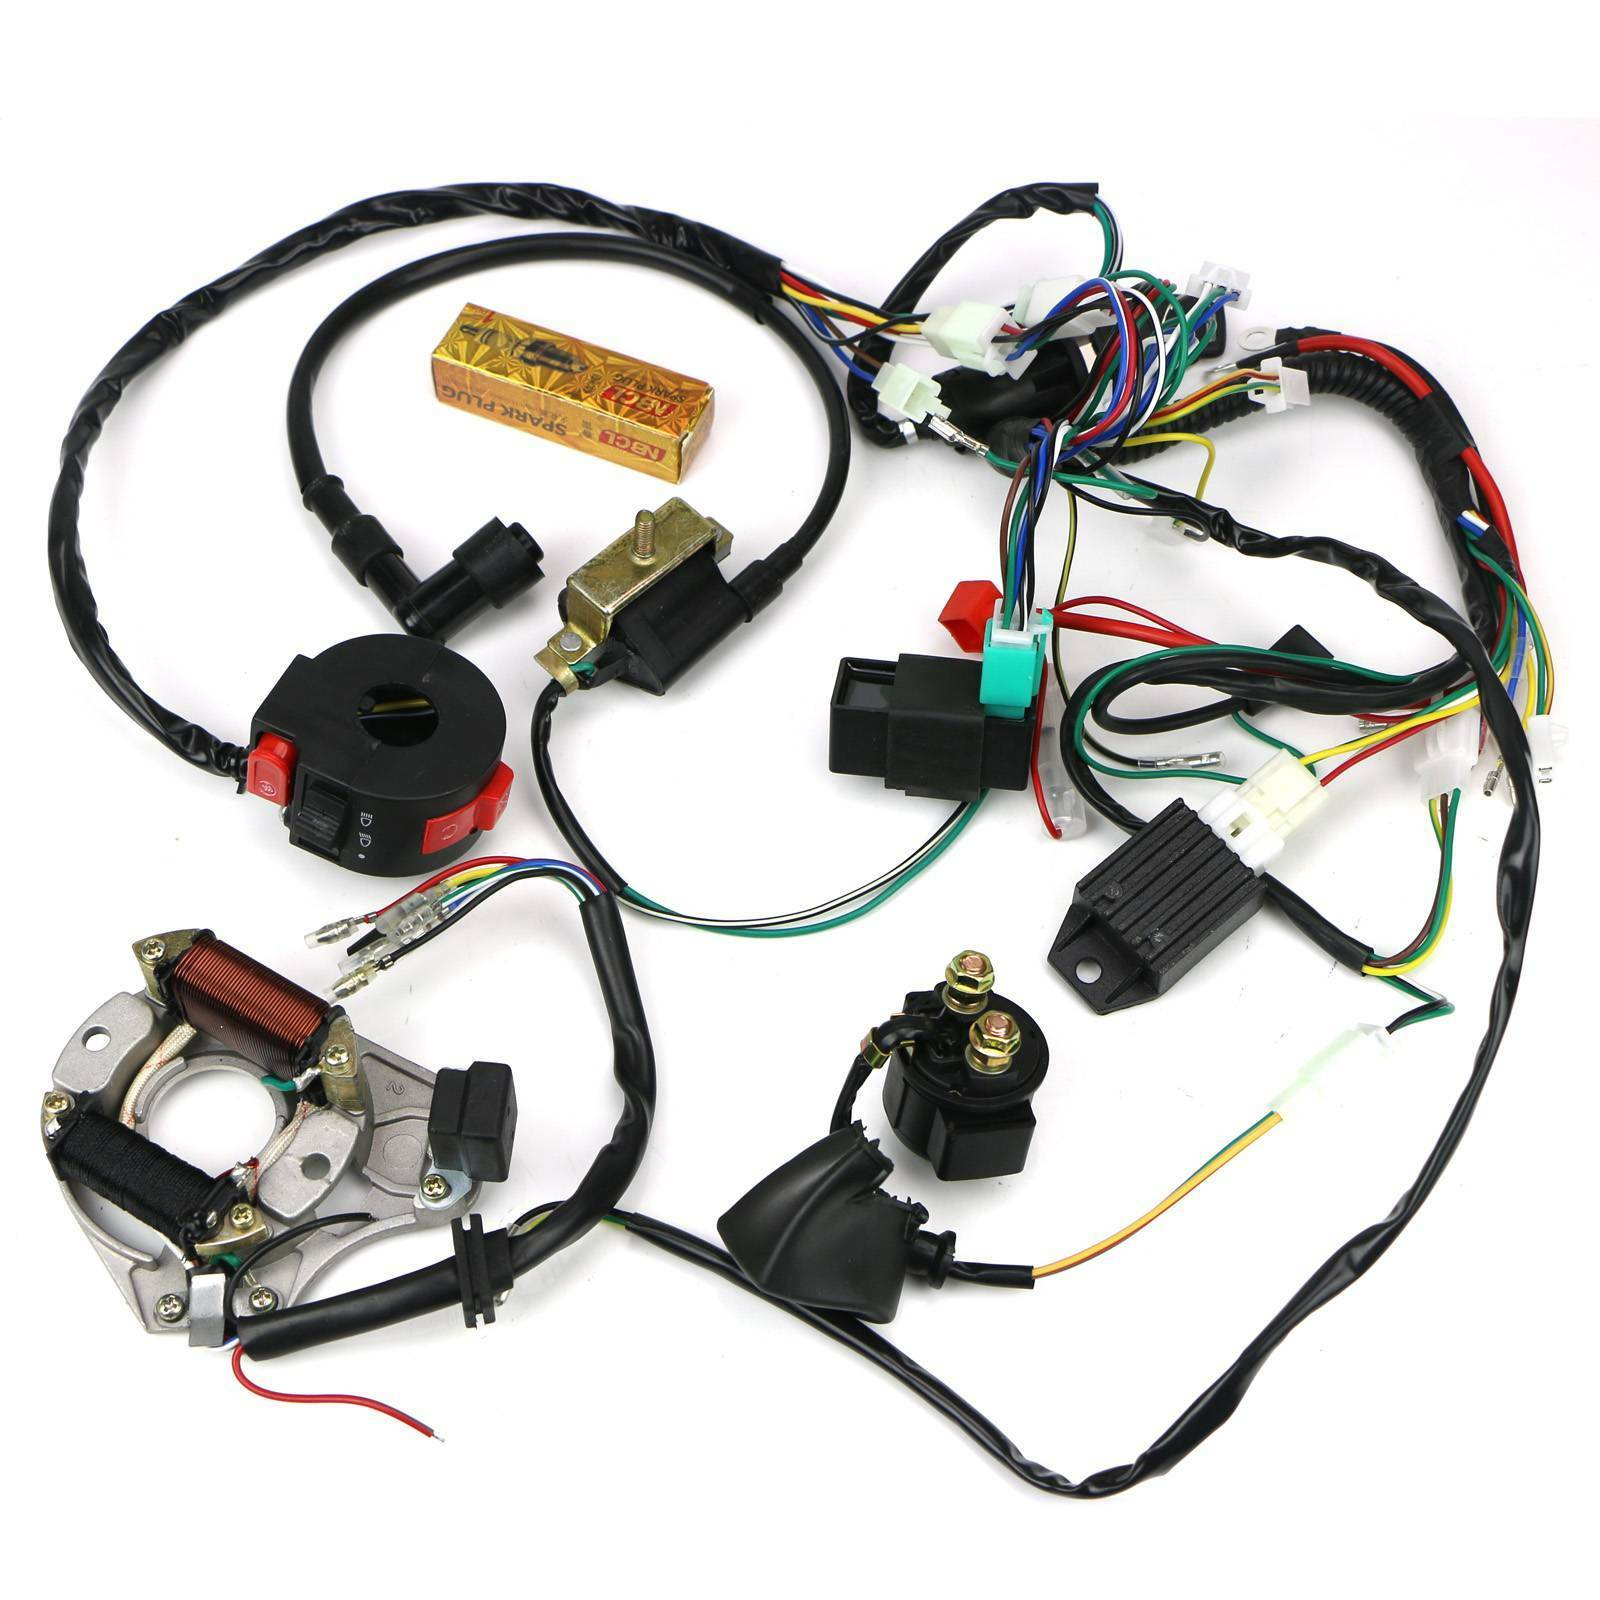 Diagram Cdi Wire Harness Stator Assembly Wiring For Atv Electric